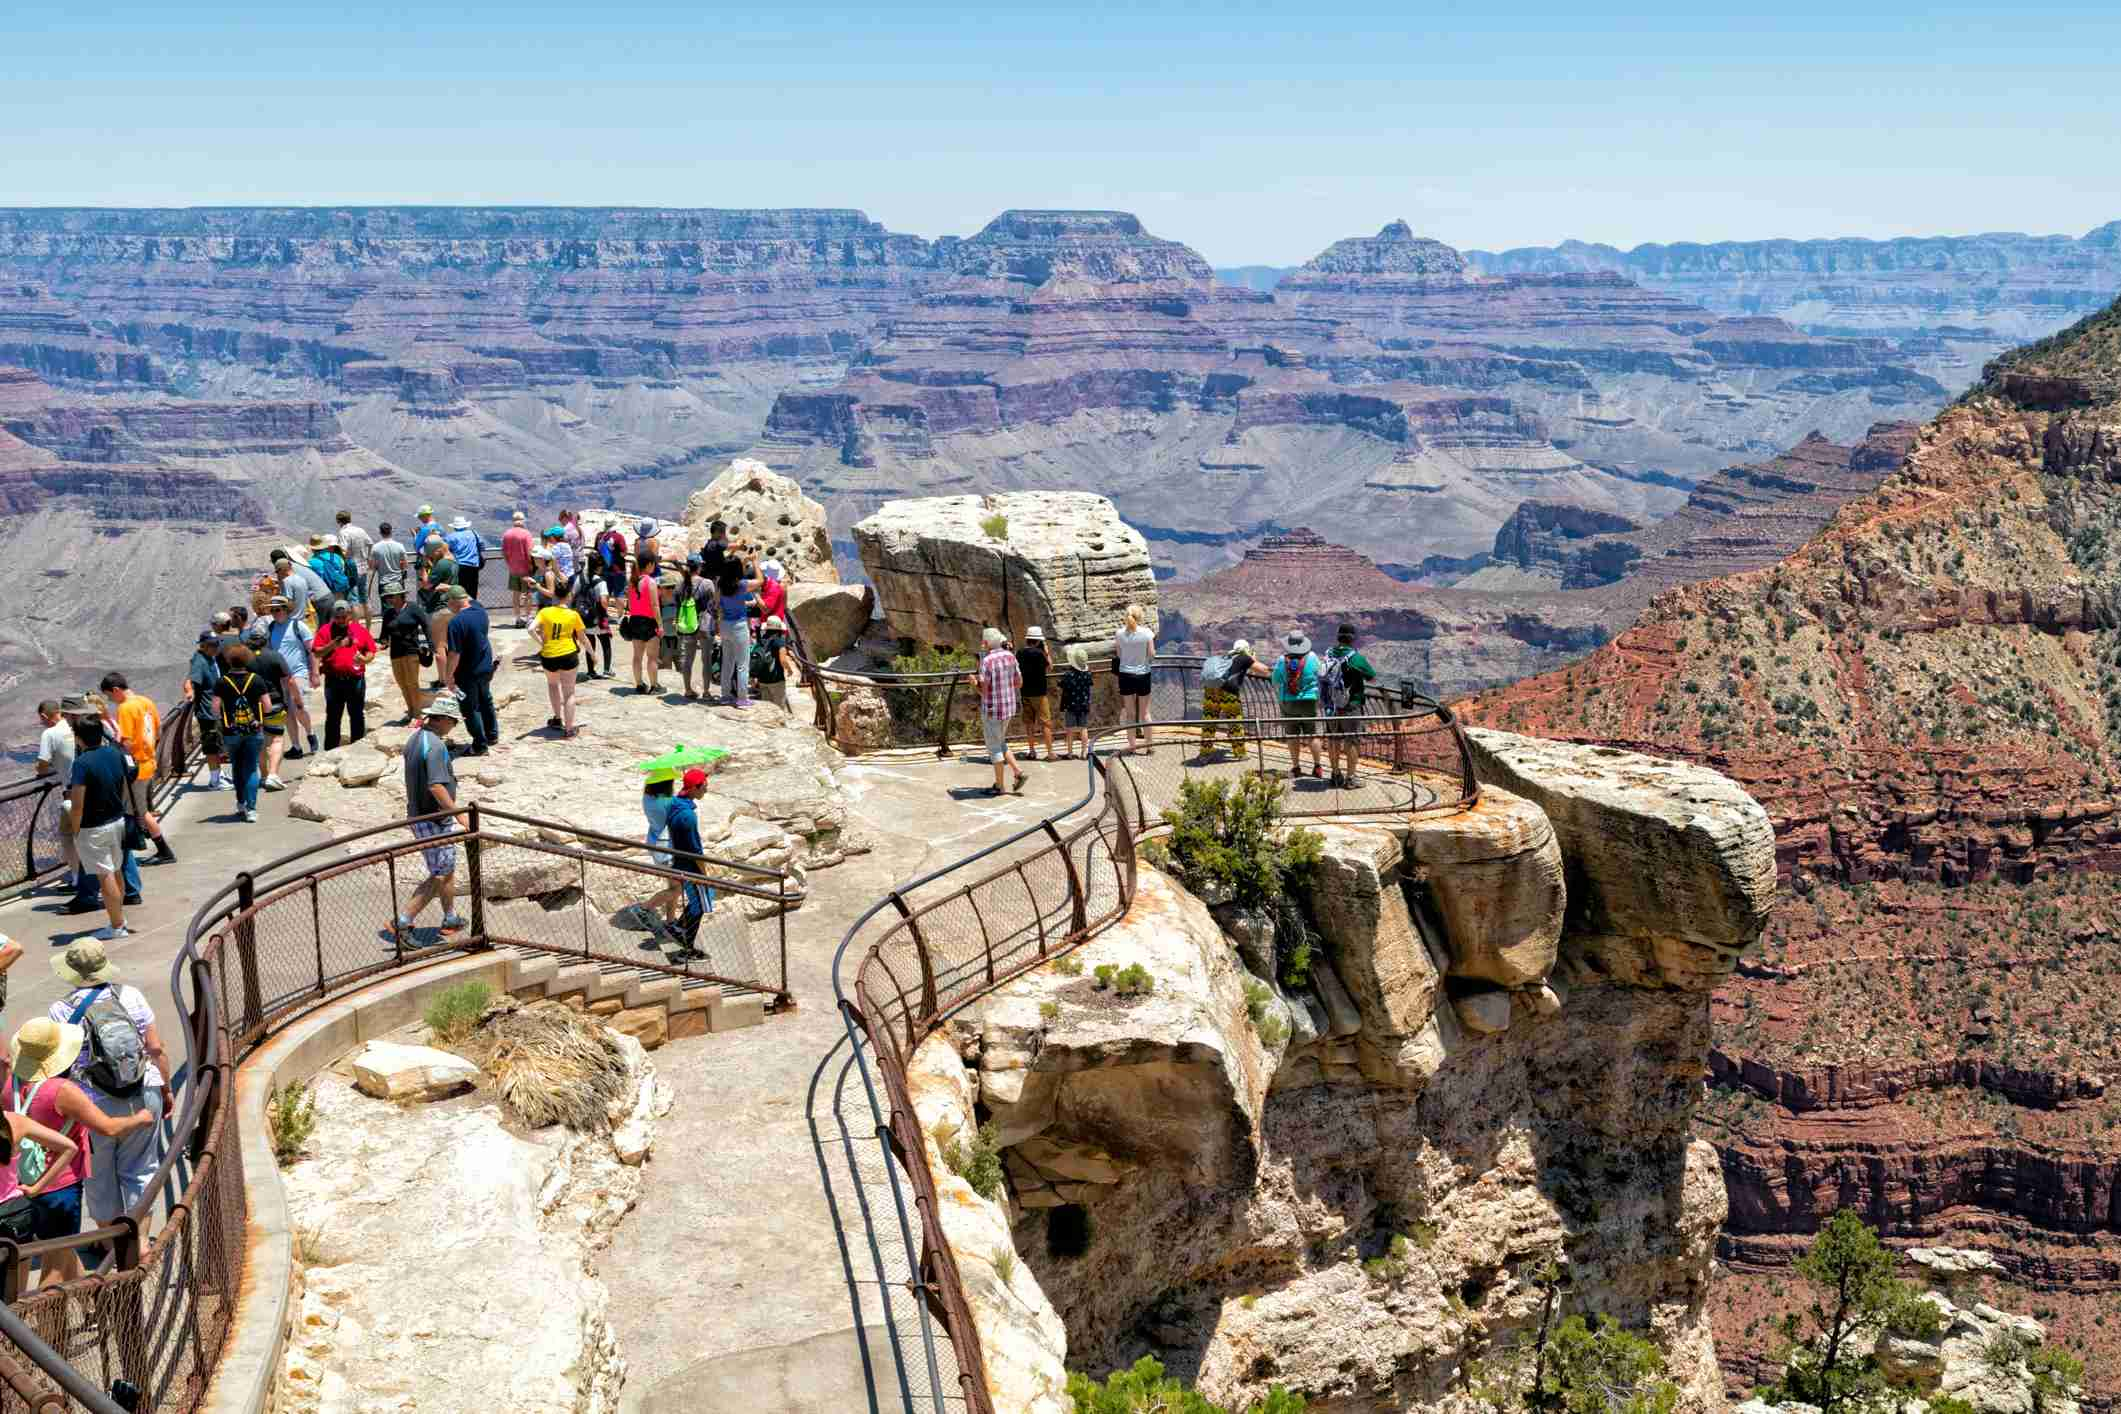 Tourists at viewpoint, South Rim, Grand Canyon National Park, Arizona, USA (B&M Noskowski / Getty Images)